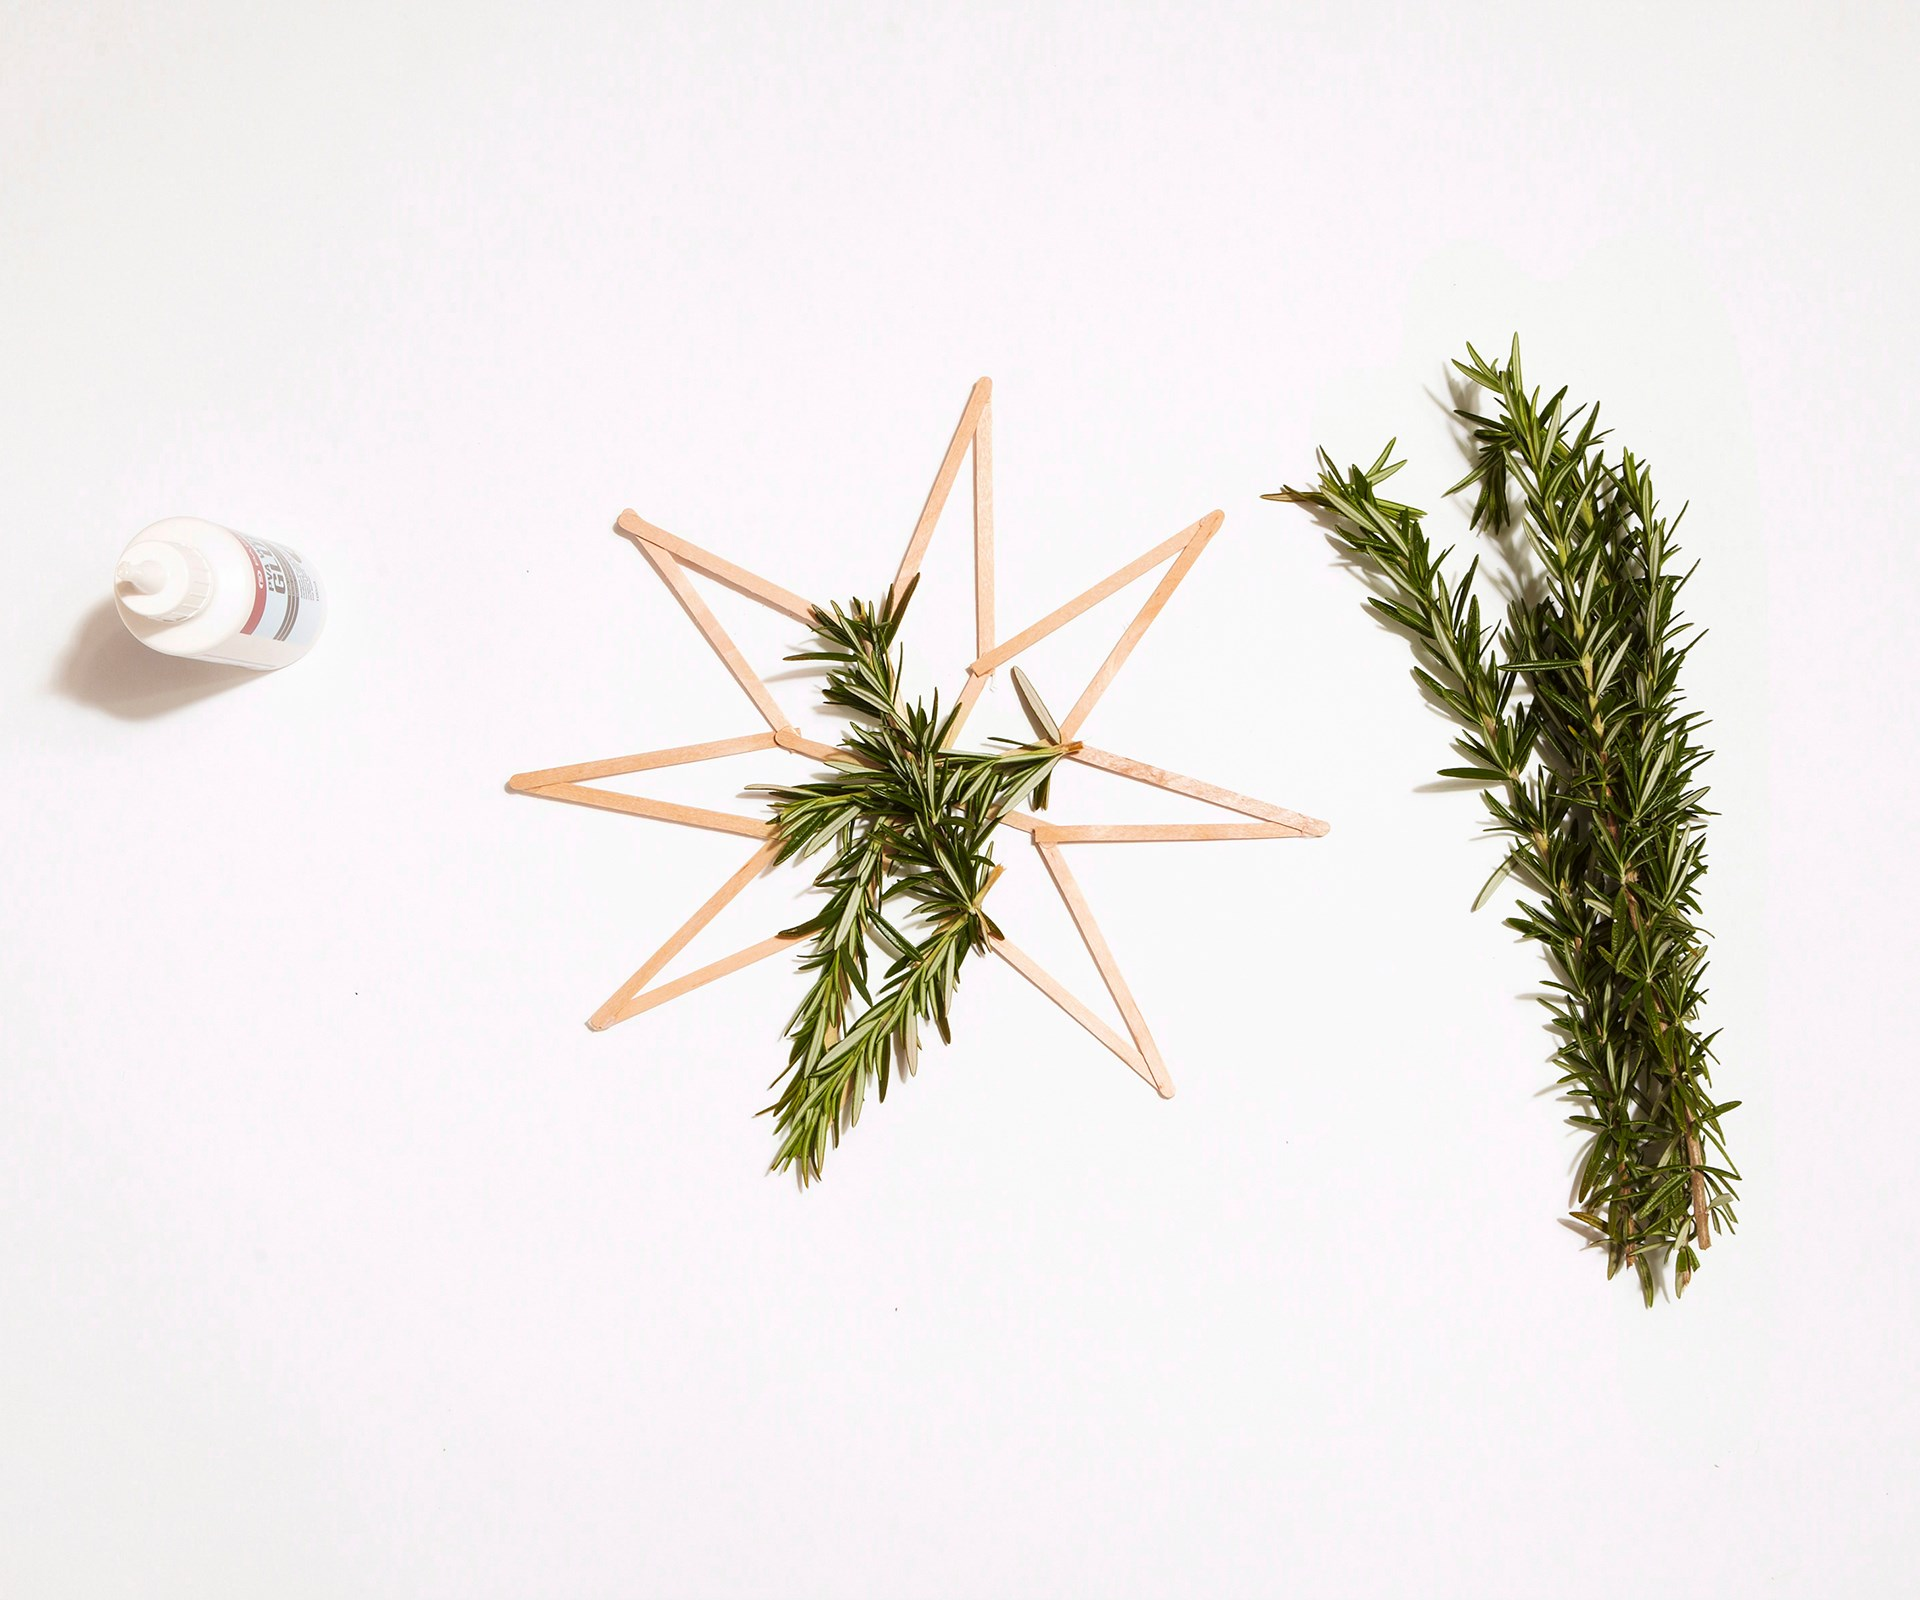 Cut your greenery into pieces the same lengths as the sections of the wooden strips. Hot glue the cut greenery to the sticks. Leave to dry. Tie coloured ribbon onto dry stars and hang.